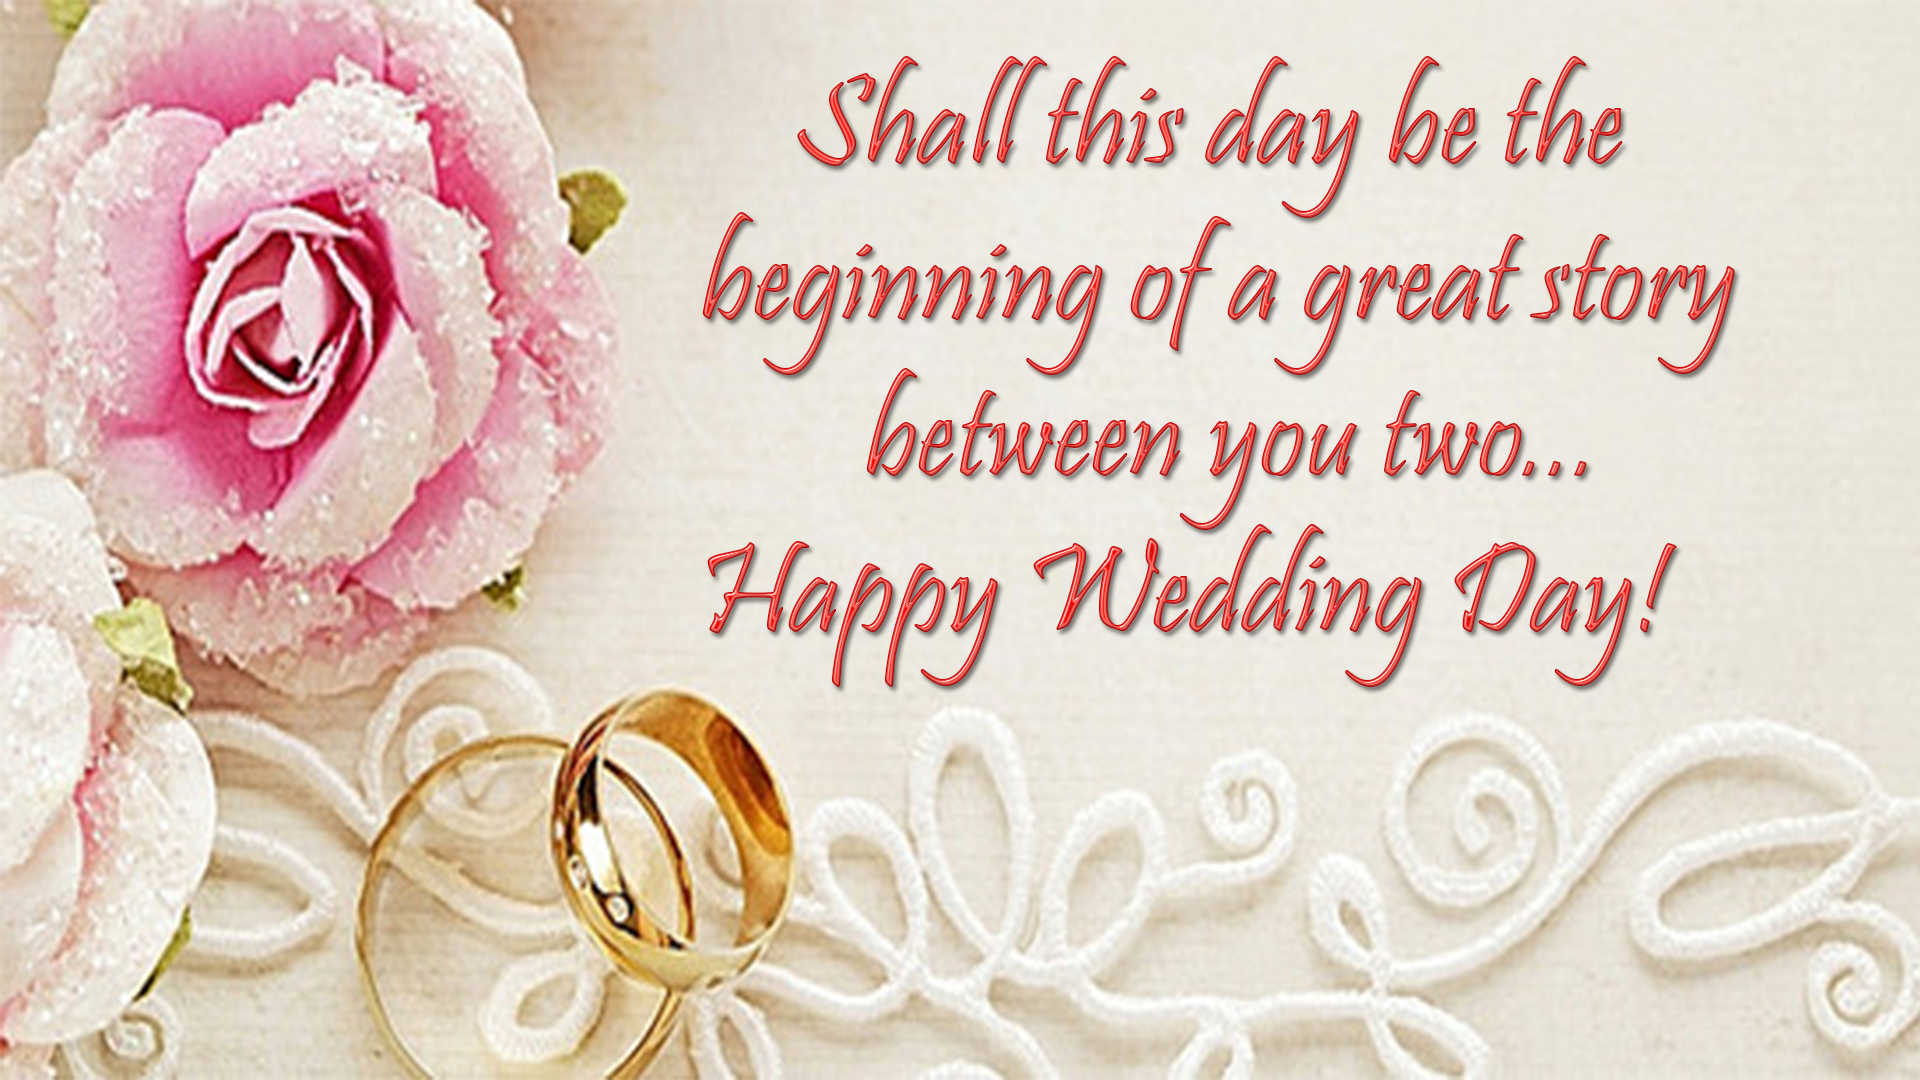 Wedding wishes greetings images happy marriage wishes beautiful wedding wishes greetings images m4hsunfo